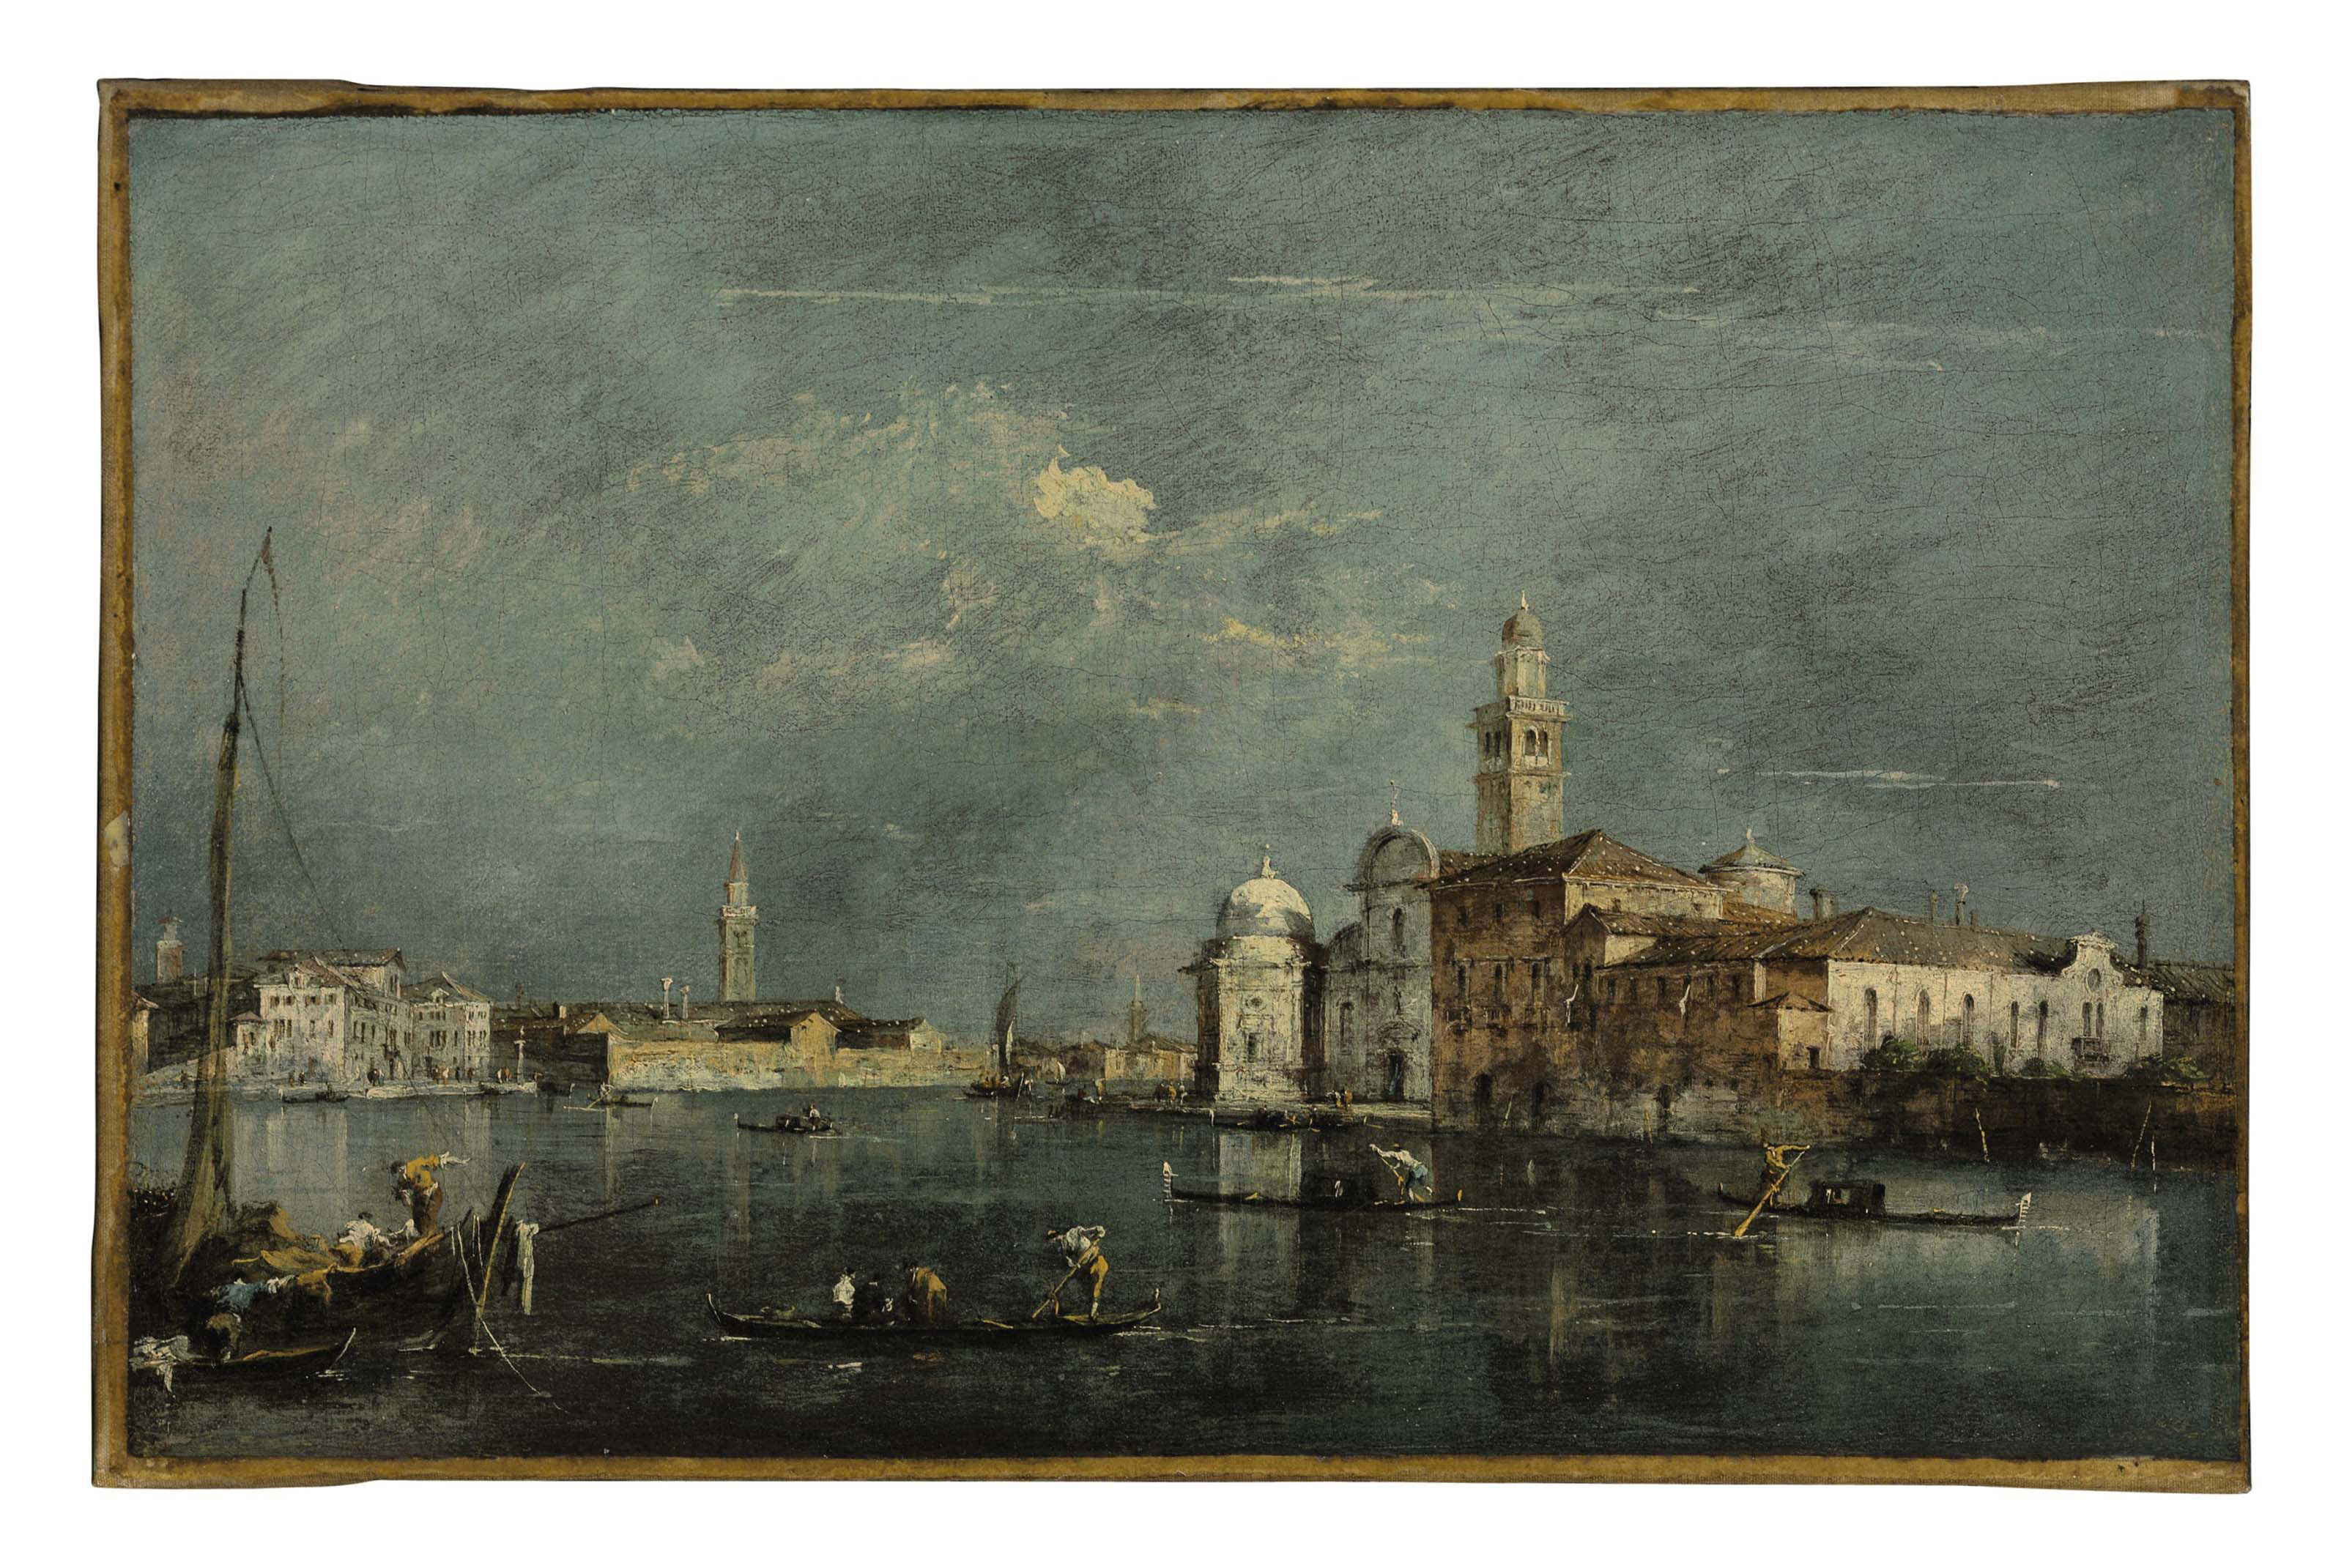 The Lagoon, Venice, with the islands of San Michele and Murano beyond